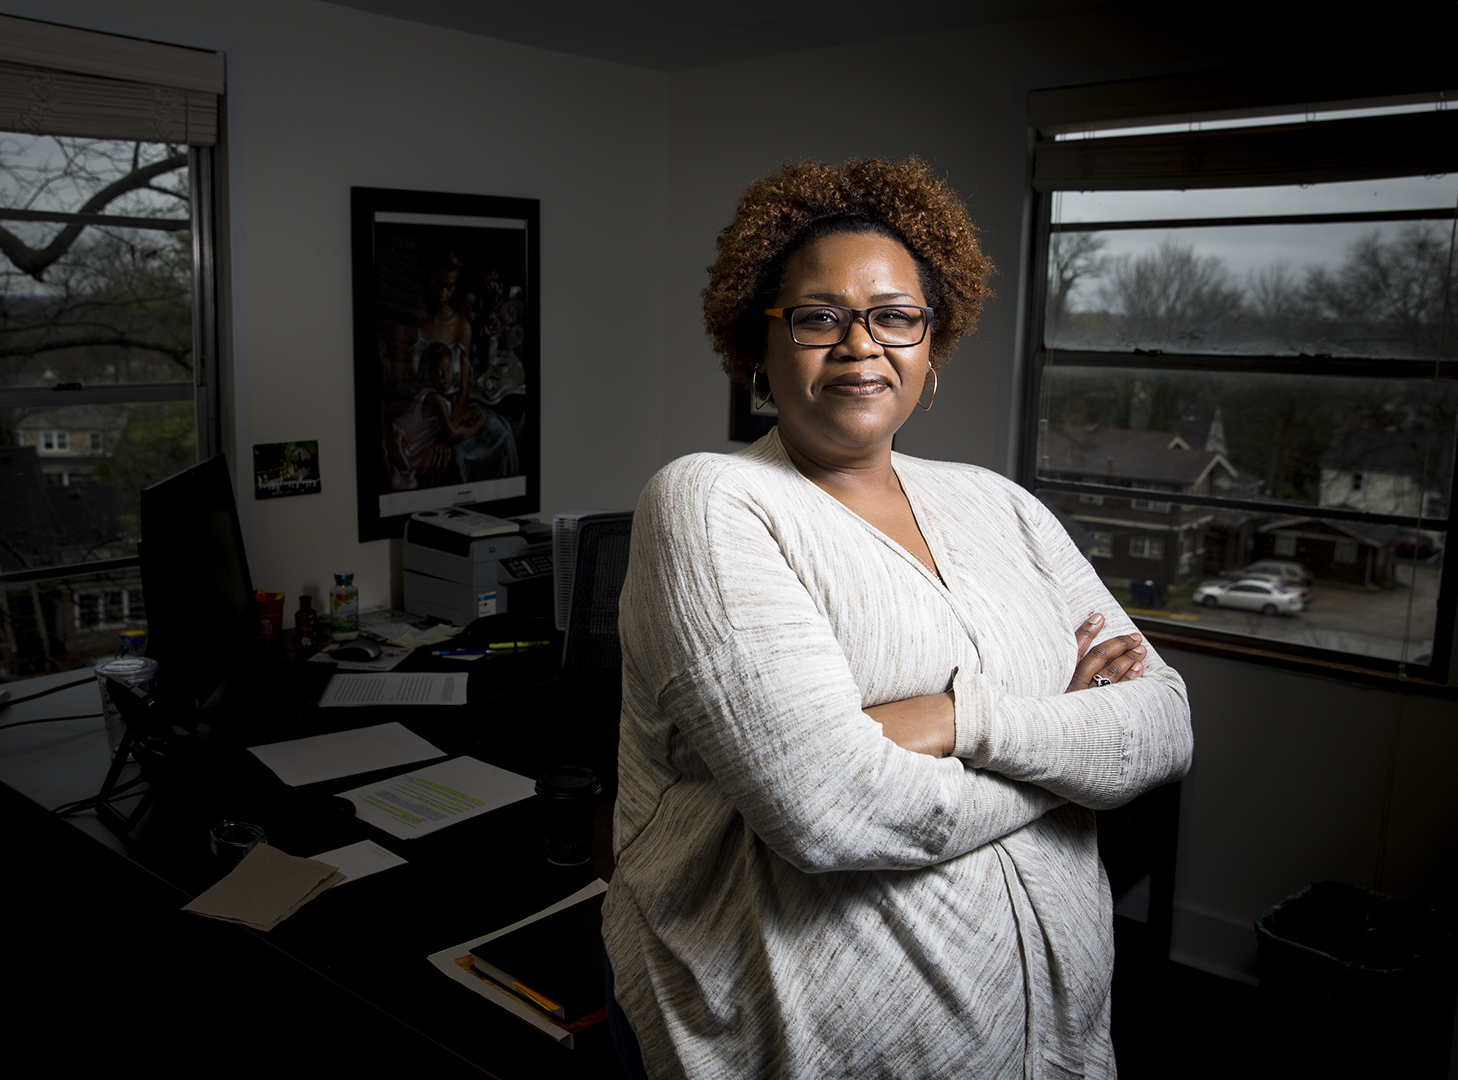 Cherly Hopson, an assistant professor of African-American Studies at WKU has been a professor for more than 19 years. Hopson said during her time at Roanoke College she was one of the five other students of color at the school. She began teaching after being inspired by stories of African-American history.